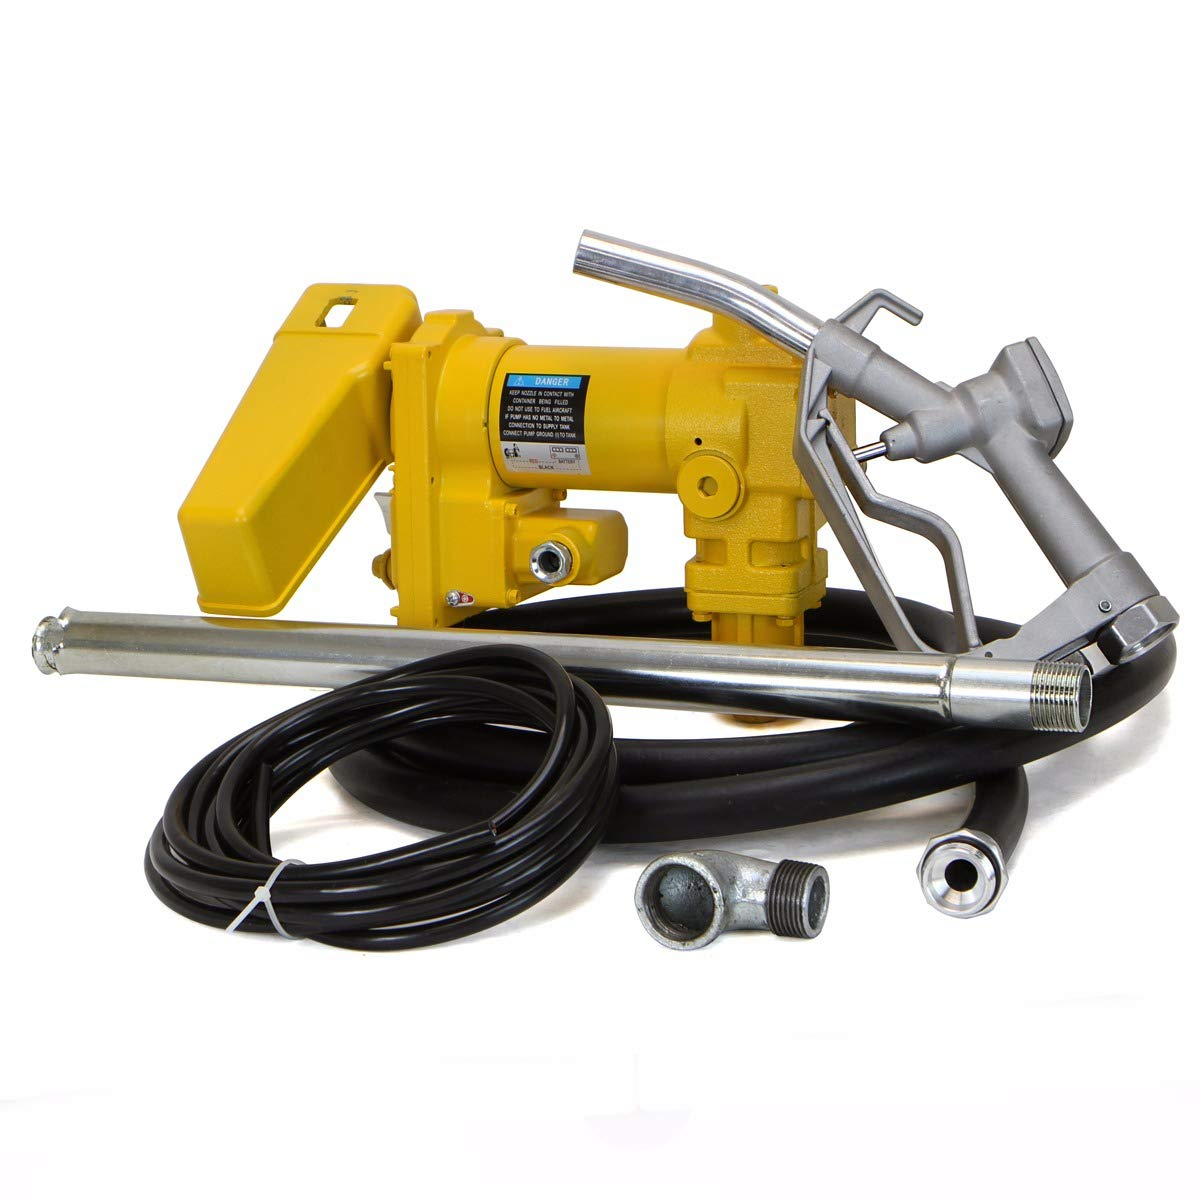 XtremepowerUS 12 Volt DC 20GPM Gasoline Fuel Transfer Pump Self-Priming Kerosene Extractor Pump with Nozzle Kit and Hose, Yellow